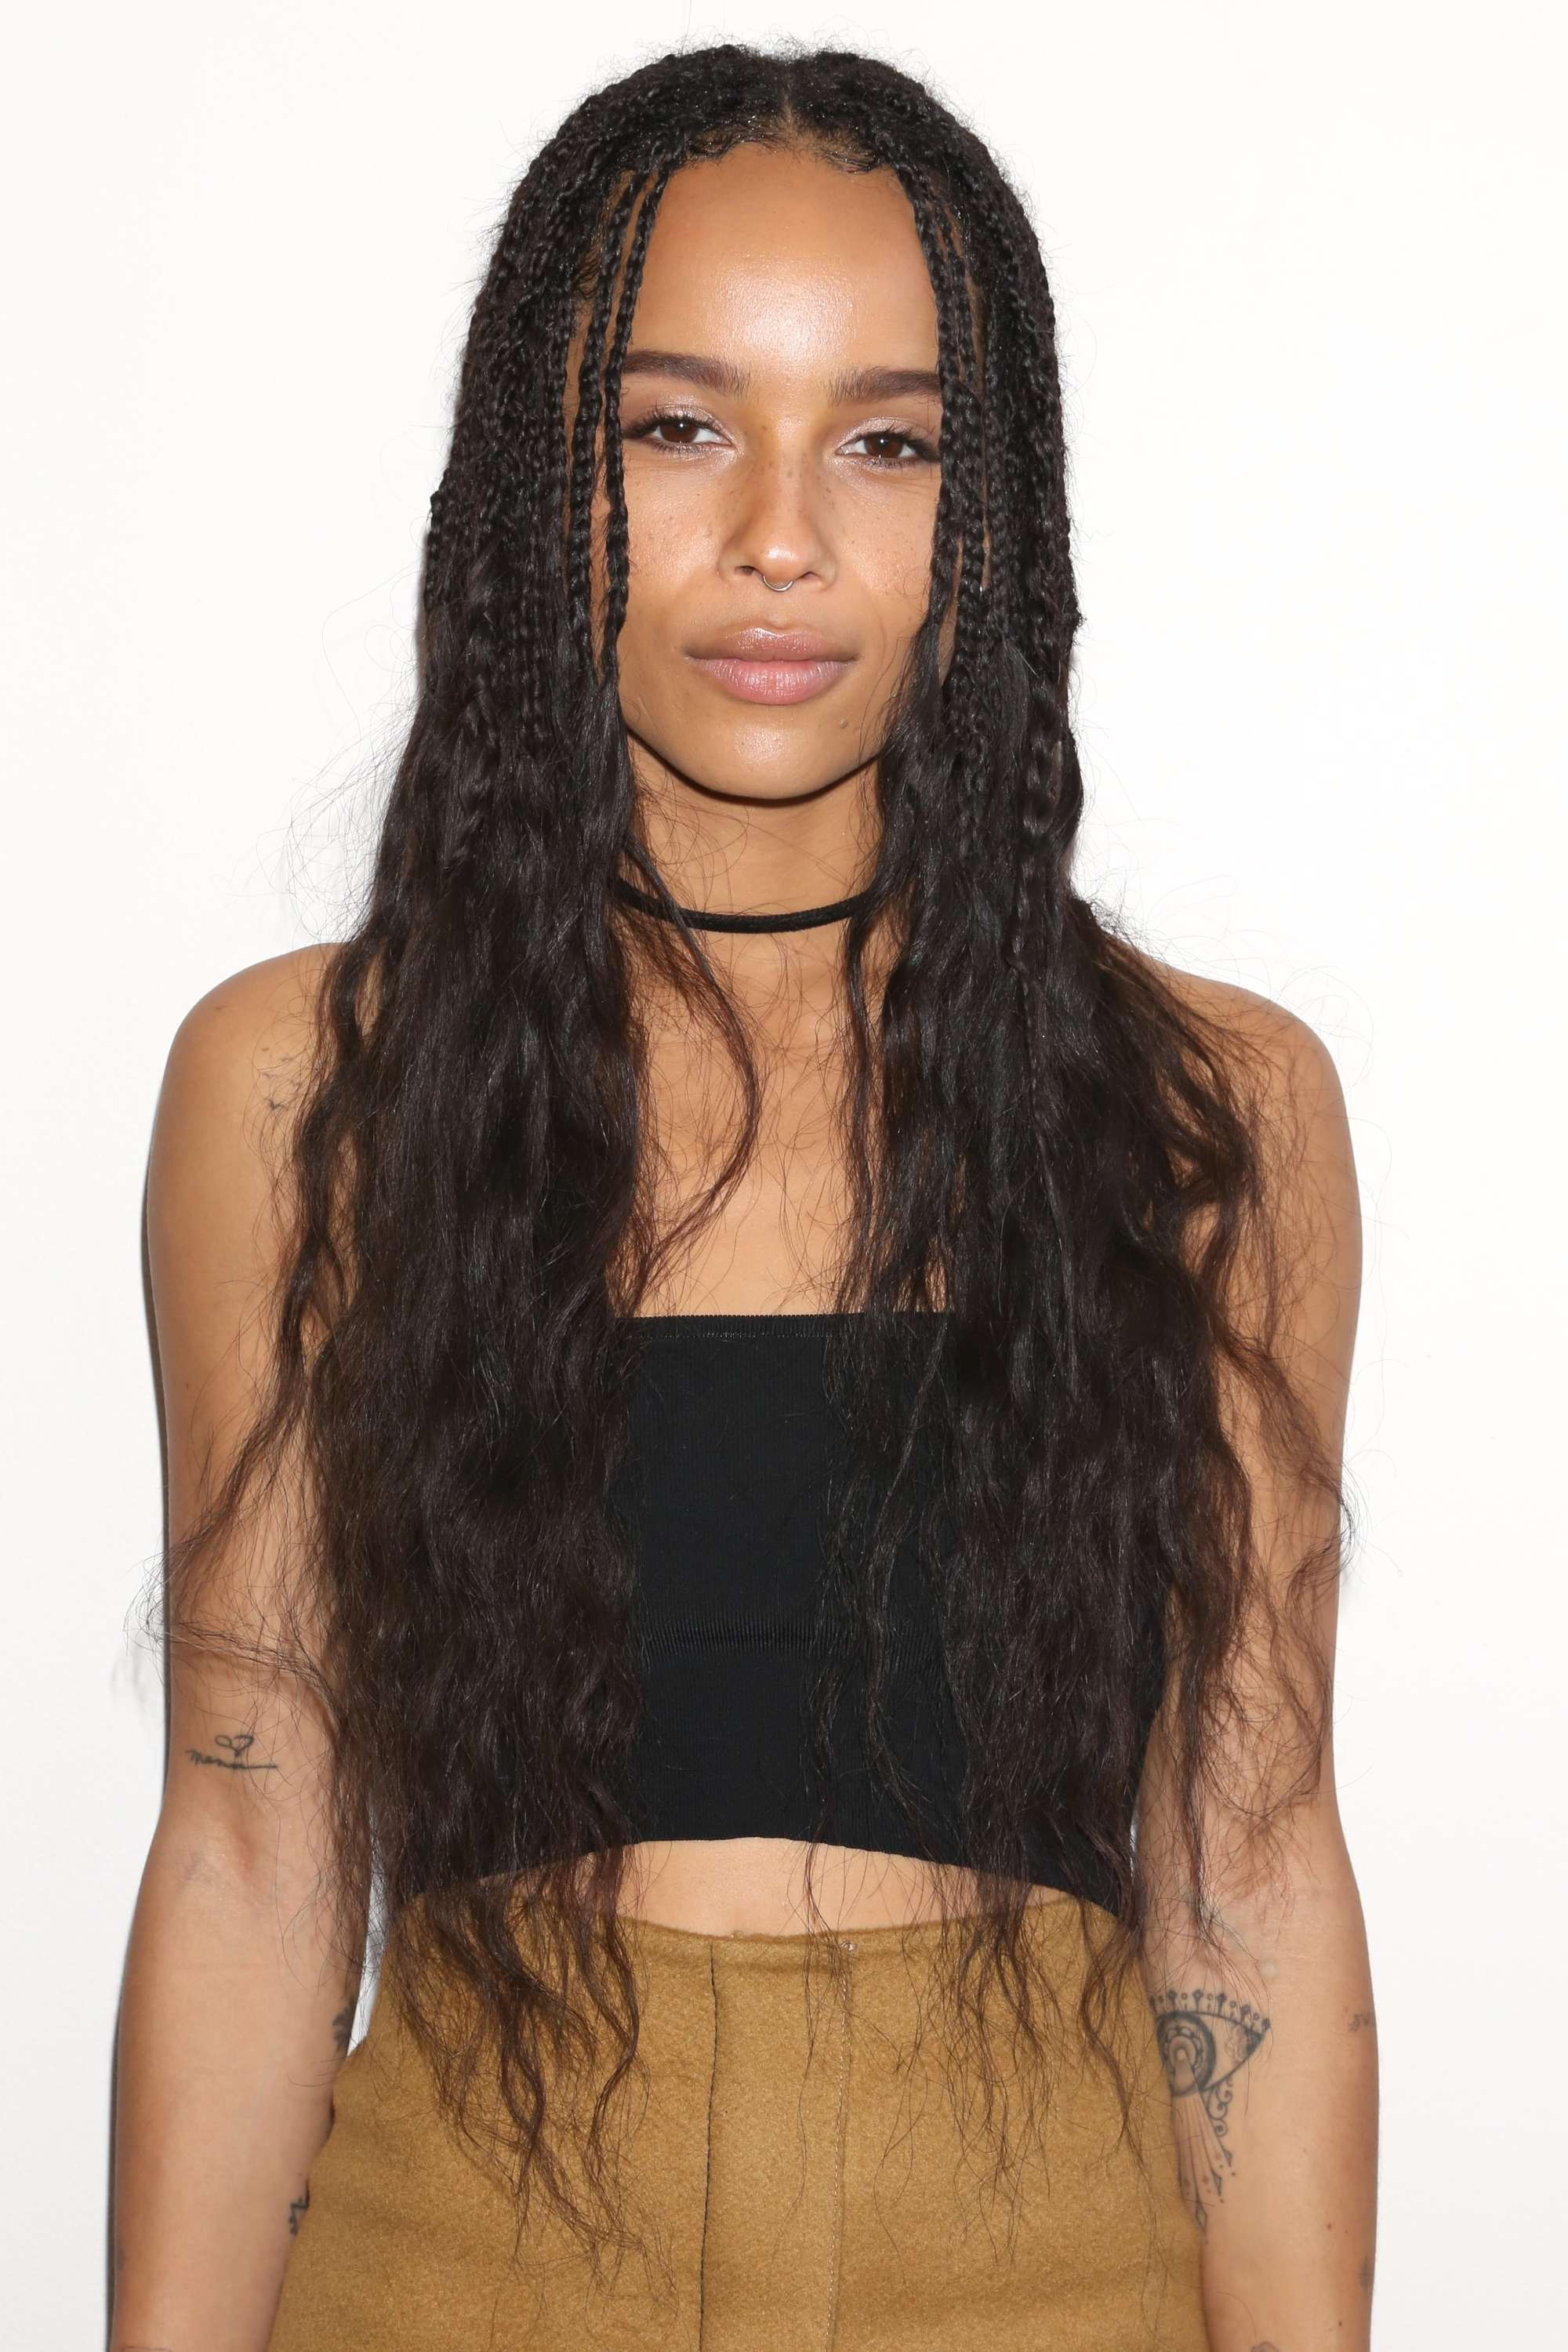 close up shot of zoe kravitz with curly box braids ends, wearing black crop top and mustard skirt